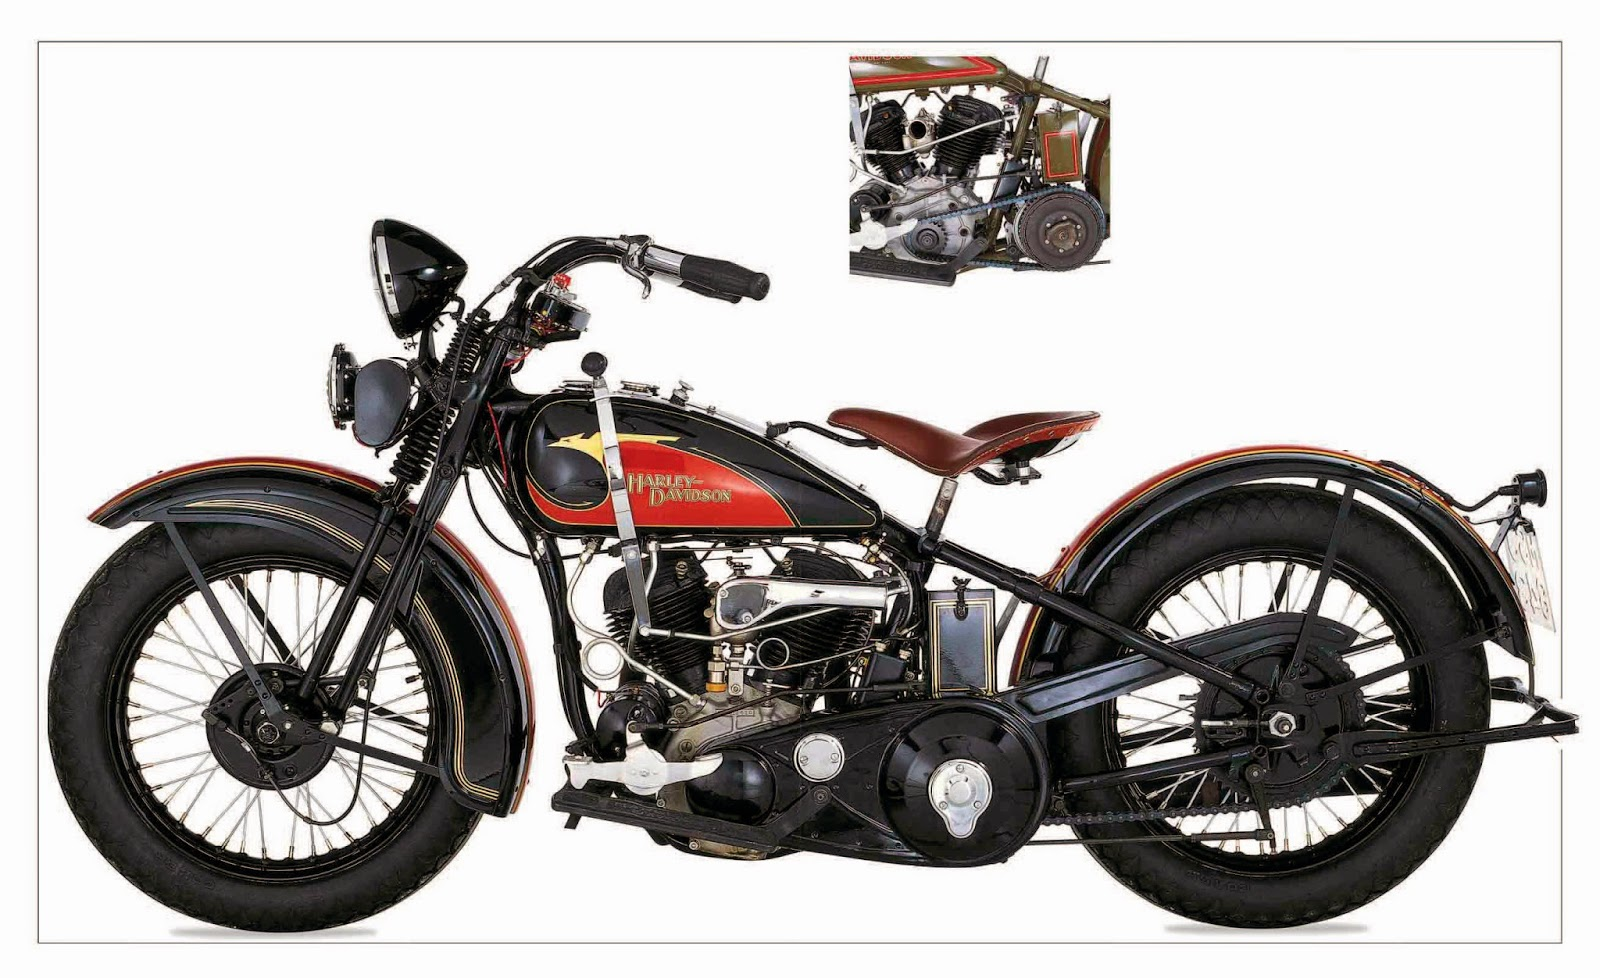 For A Harley Ironhead Xlch Wiring Diagram Real 1977 Shovelhead 74